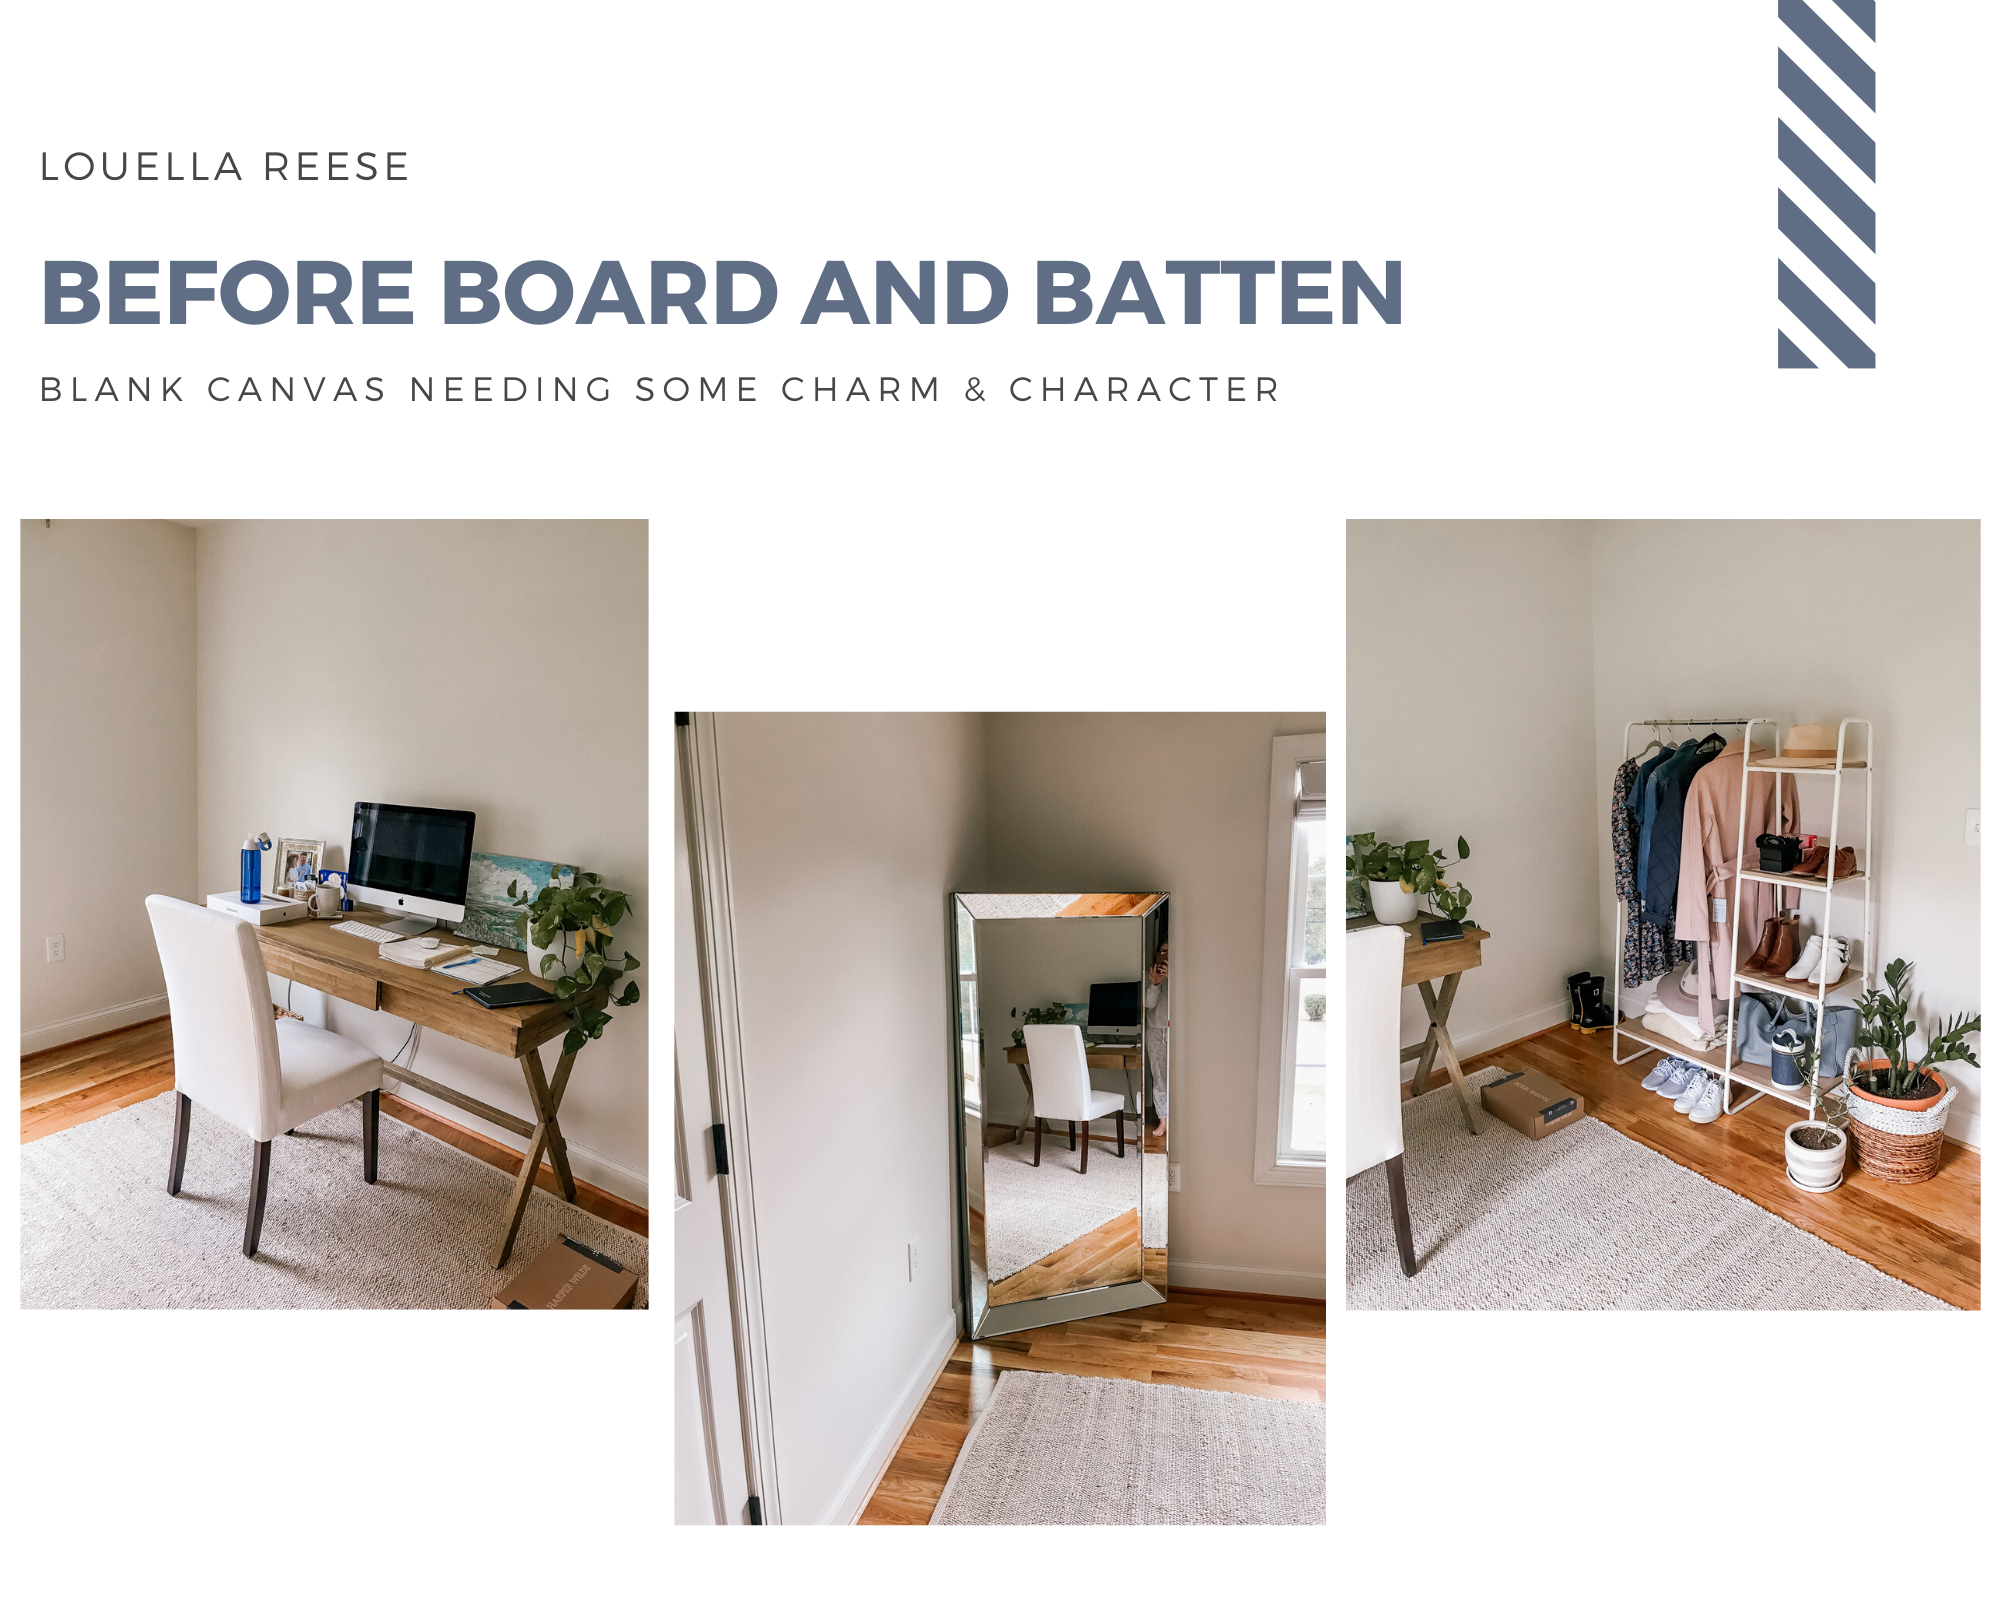 Before Office Photos | Louella Reese